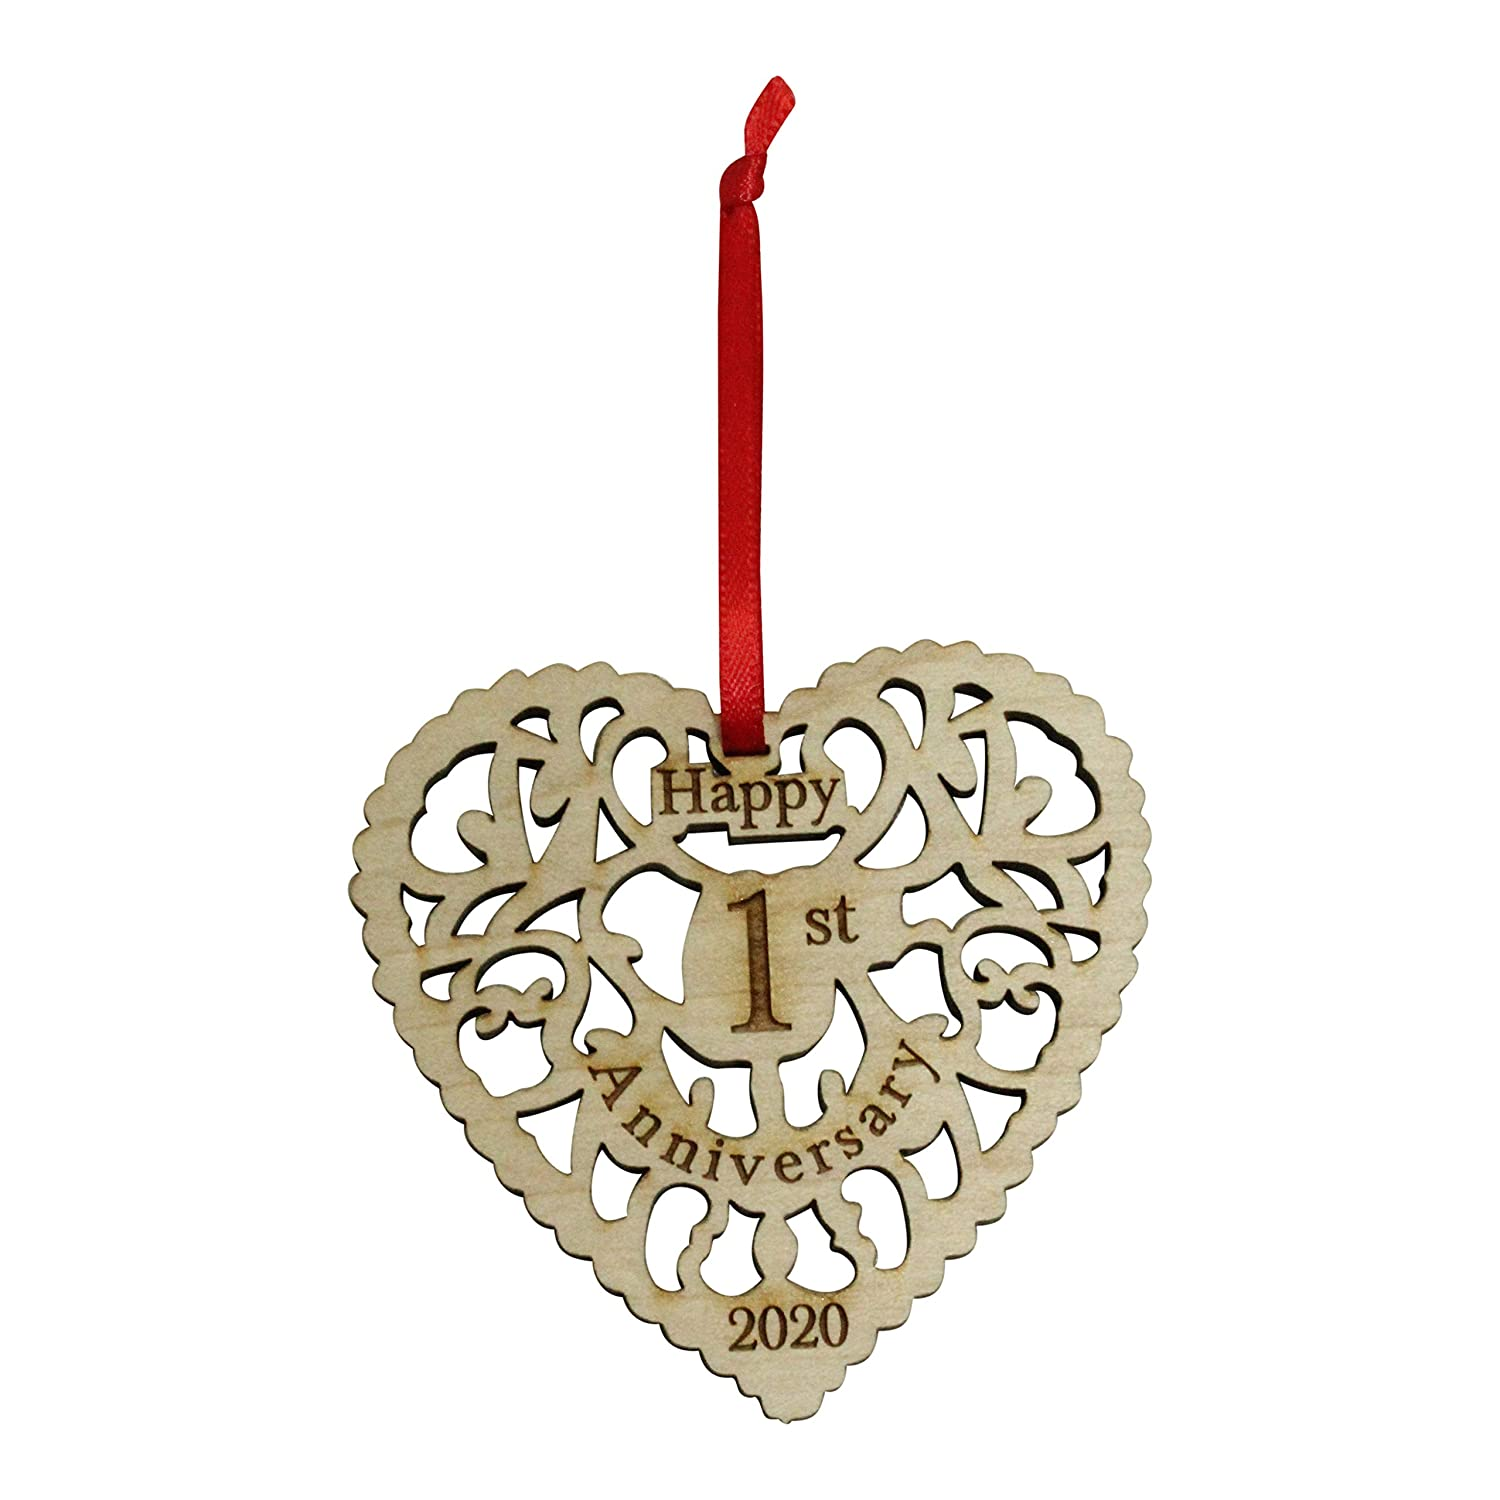 Buy Twisted Anchor Trading Co Anniversary Ornament 2020 Heart Shaped Happy Anniversary Ornament Beautiful Laser Cut Wood Detail Comes In A Organza Gift Bag So It S Ready To Give